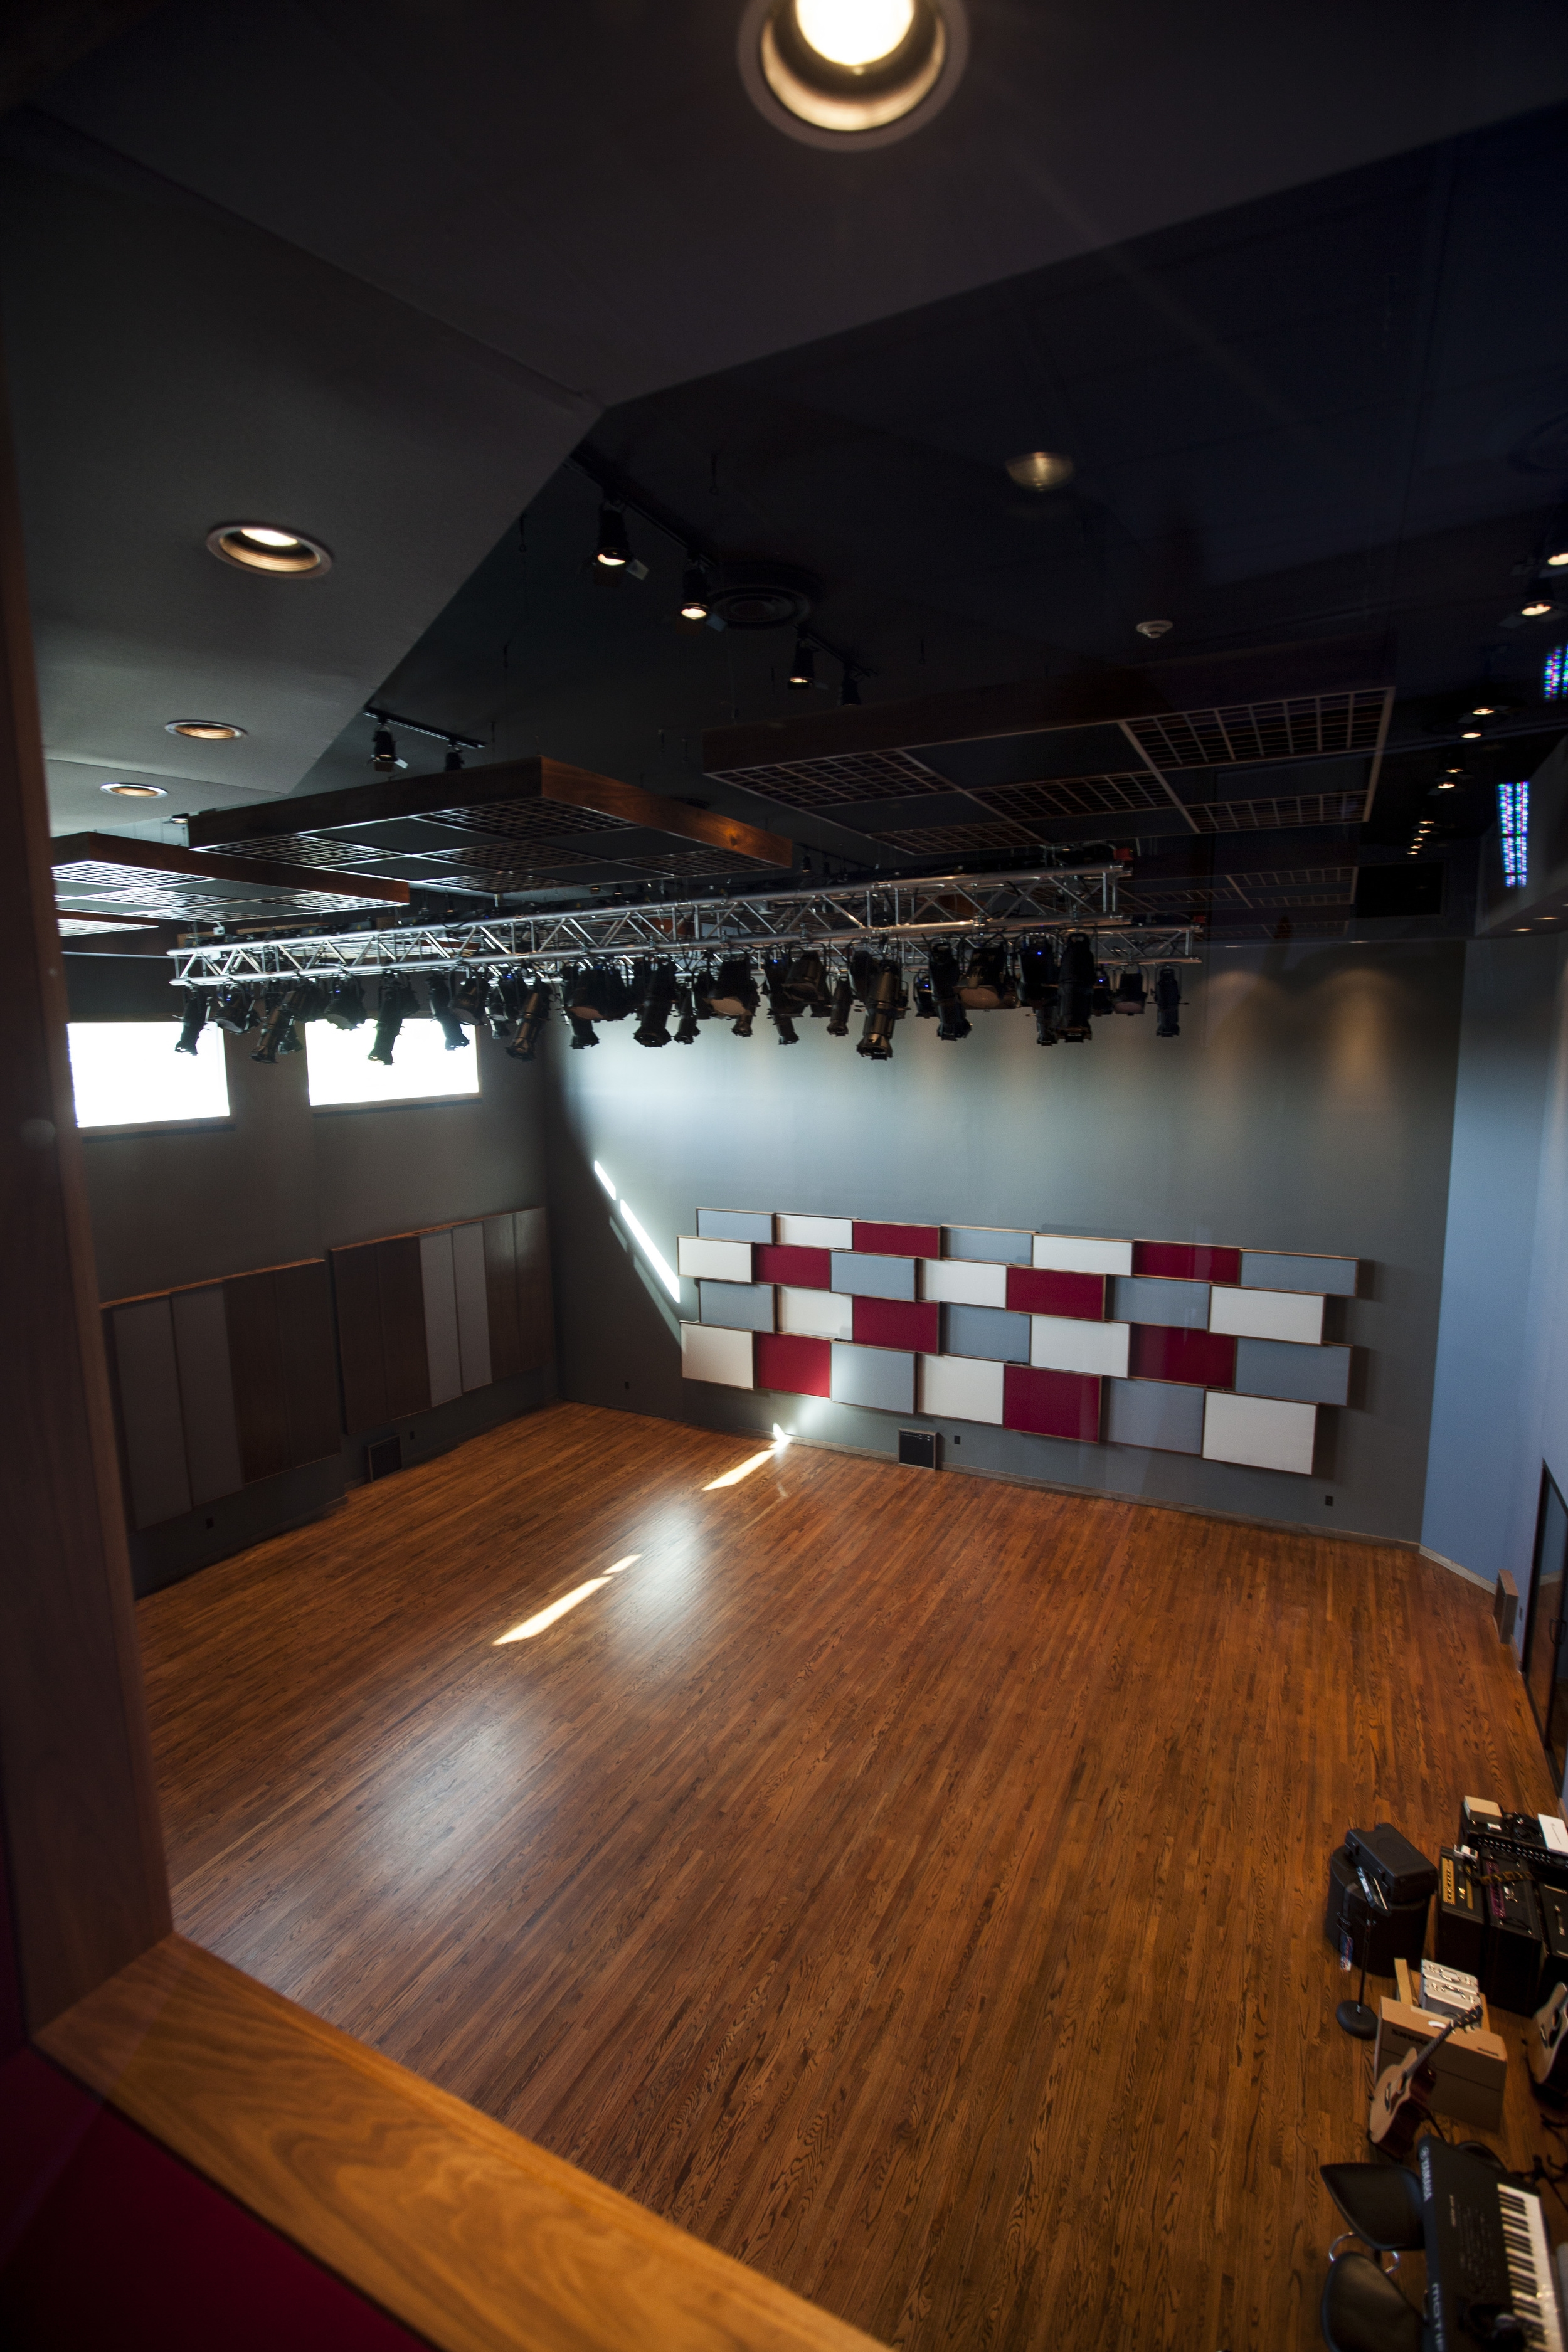 Tracking Room Aerial View